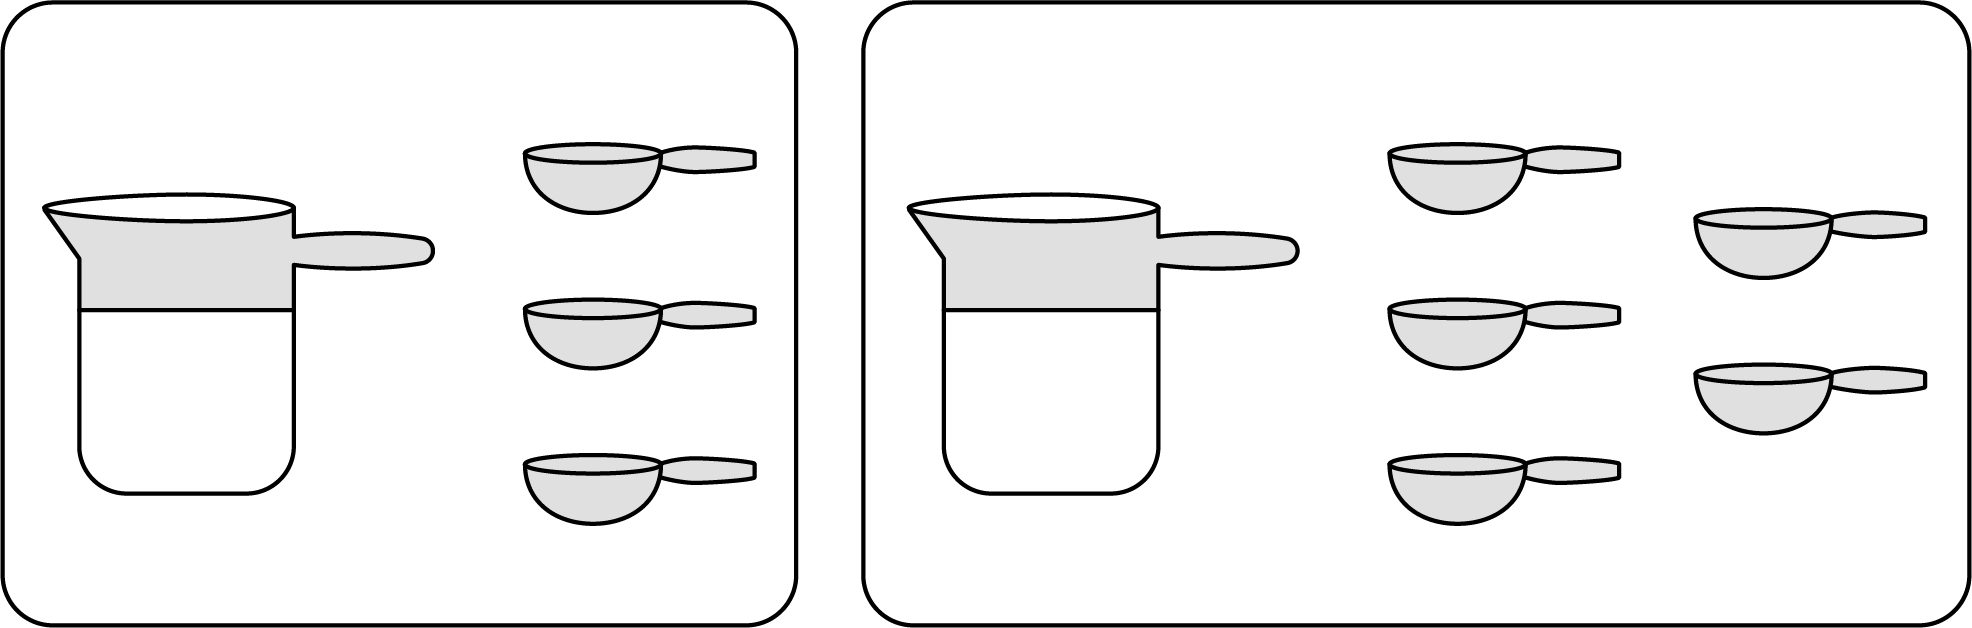 Two figures: The first figure shows 1 cup and 3 tablespoons. The second figure shows 1 cup and 5 tablespoons.